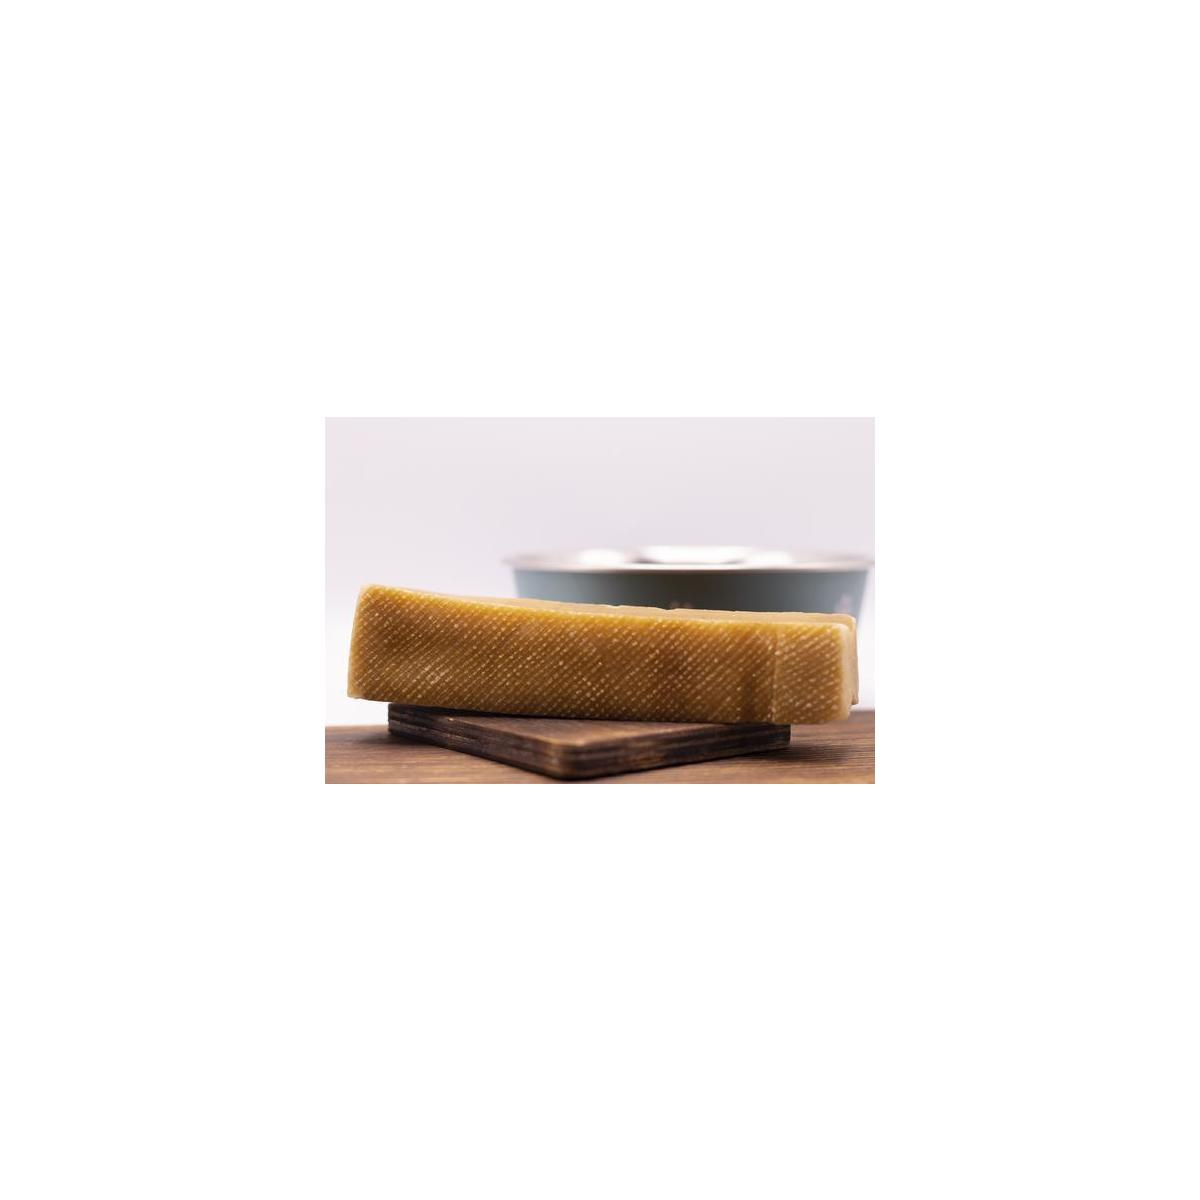 Himalayan Yak Cheese Dog Chew Size: Large Double Up